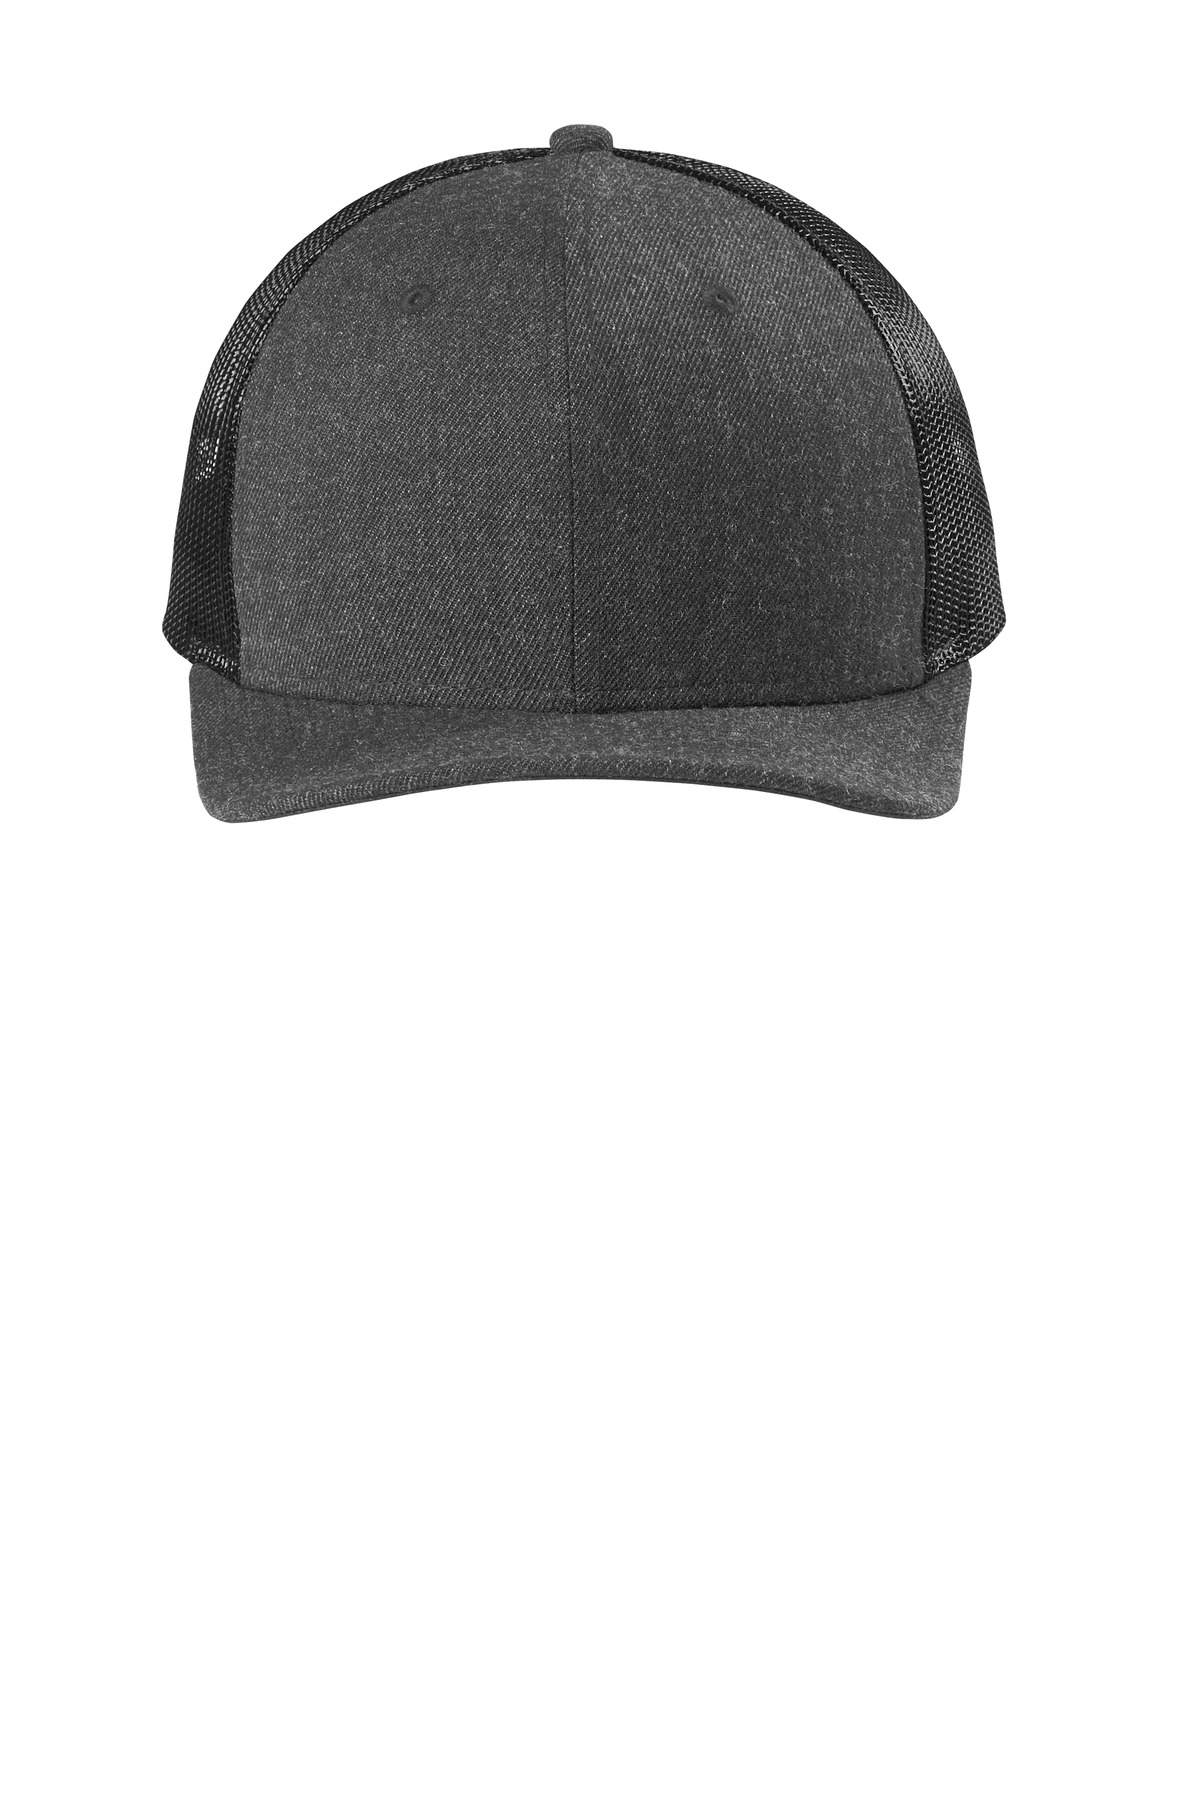 New Era  ®   Snapback Low Profile Trucker Cap   NE207 - Heather Graphite/ Black